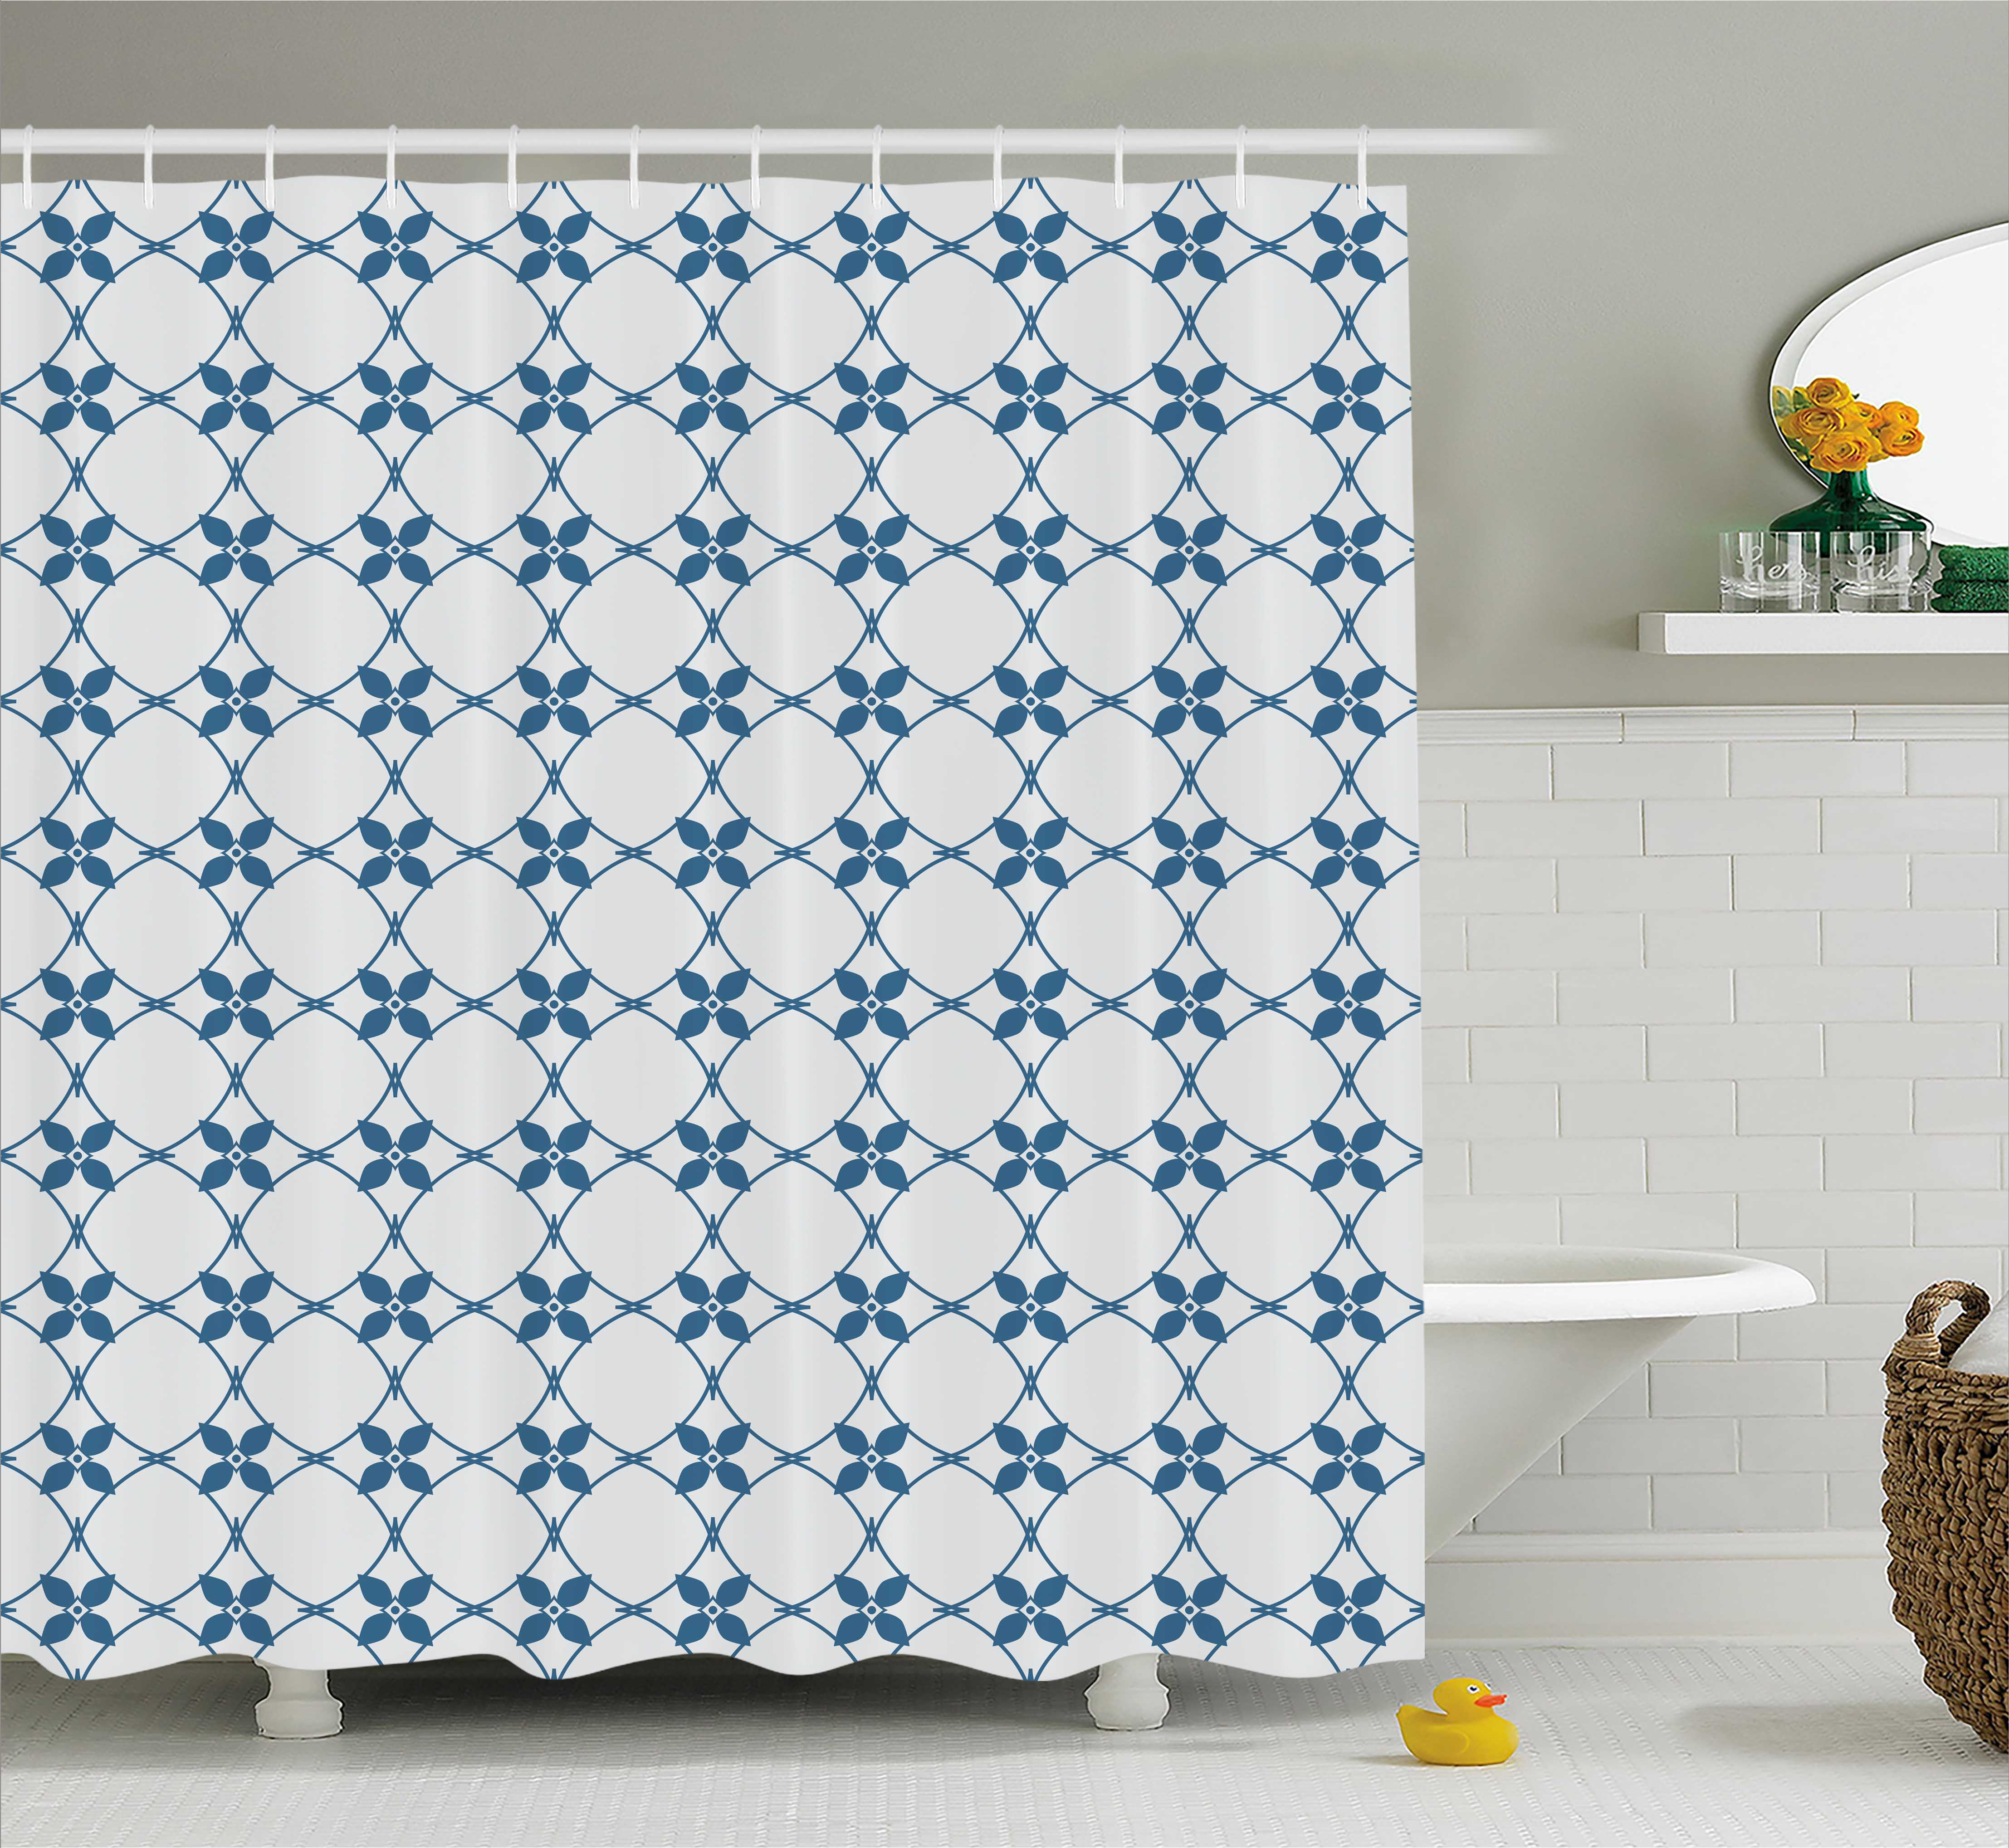 Chinese Shower Curtain, Starry Shapes and Contiguous Circles in Galactic Sky Inspired Far Eastern Style, Fabric Bathroom Set with Hooks, 69W X 84L Inches Extra Long, Blue White, by Ambesonne